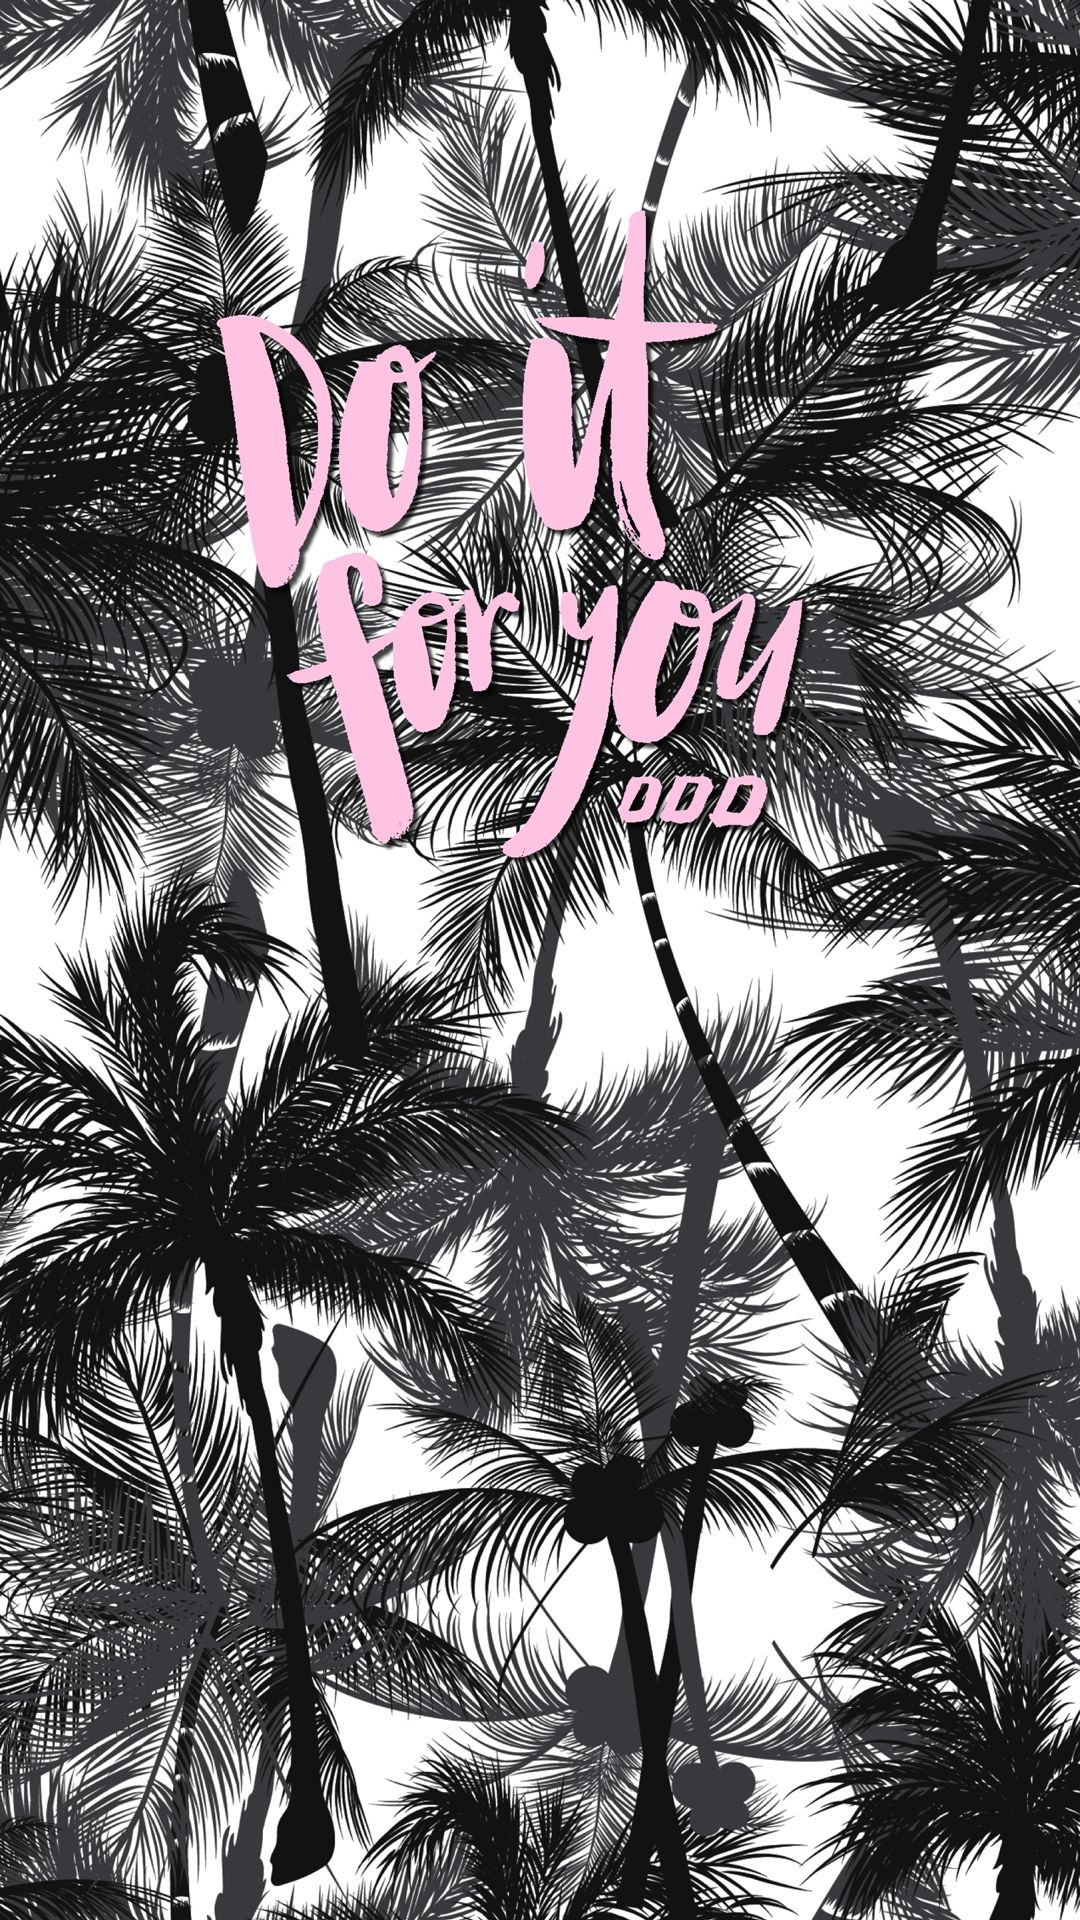 Pin by Nen Somaly on Wallpaper vol.24 Neon signs, My